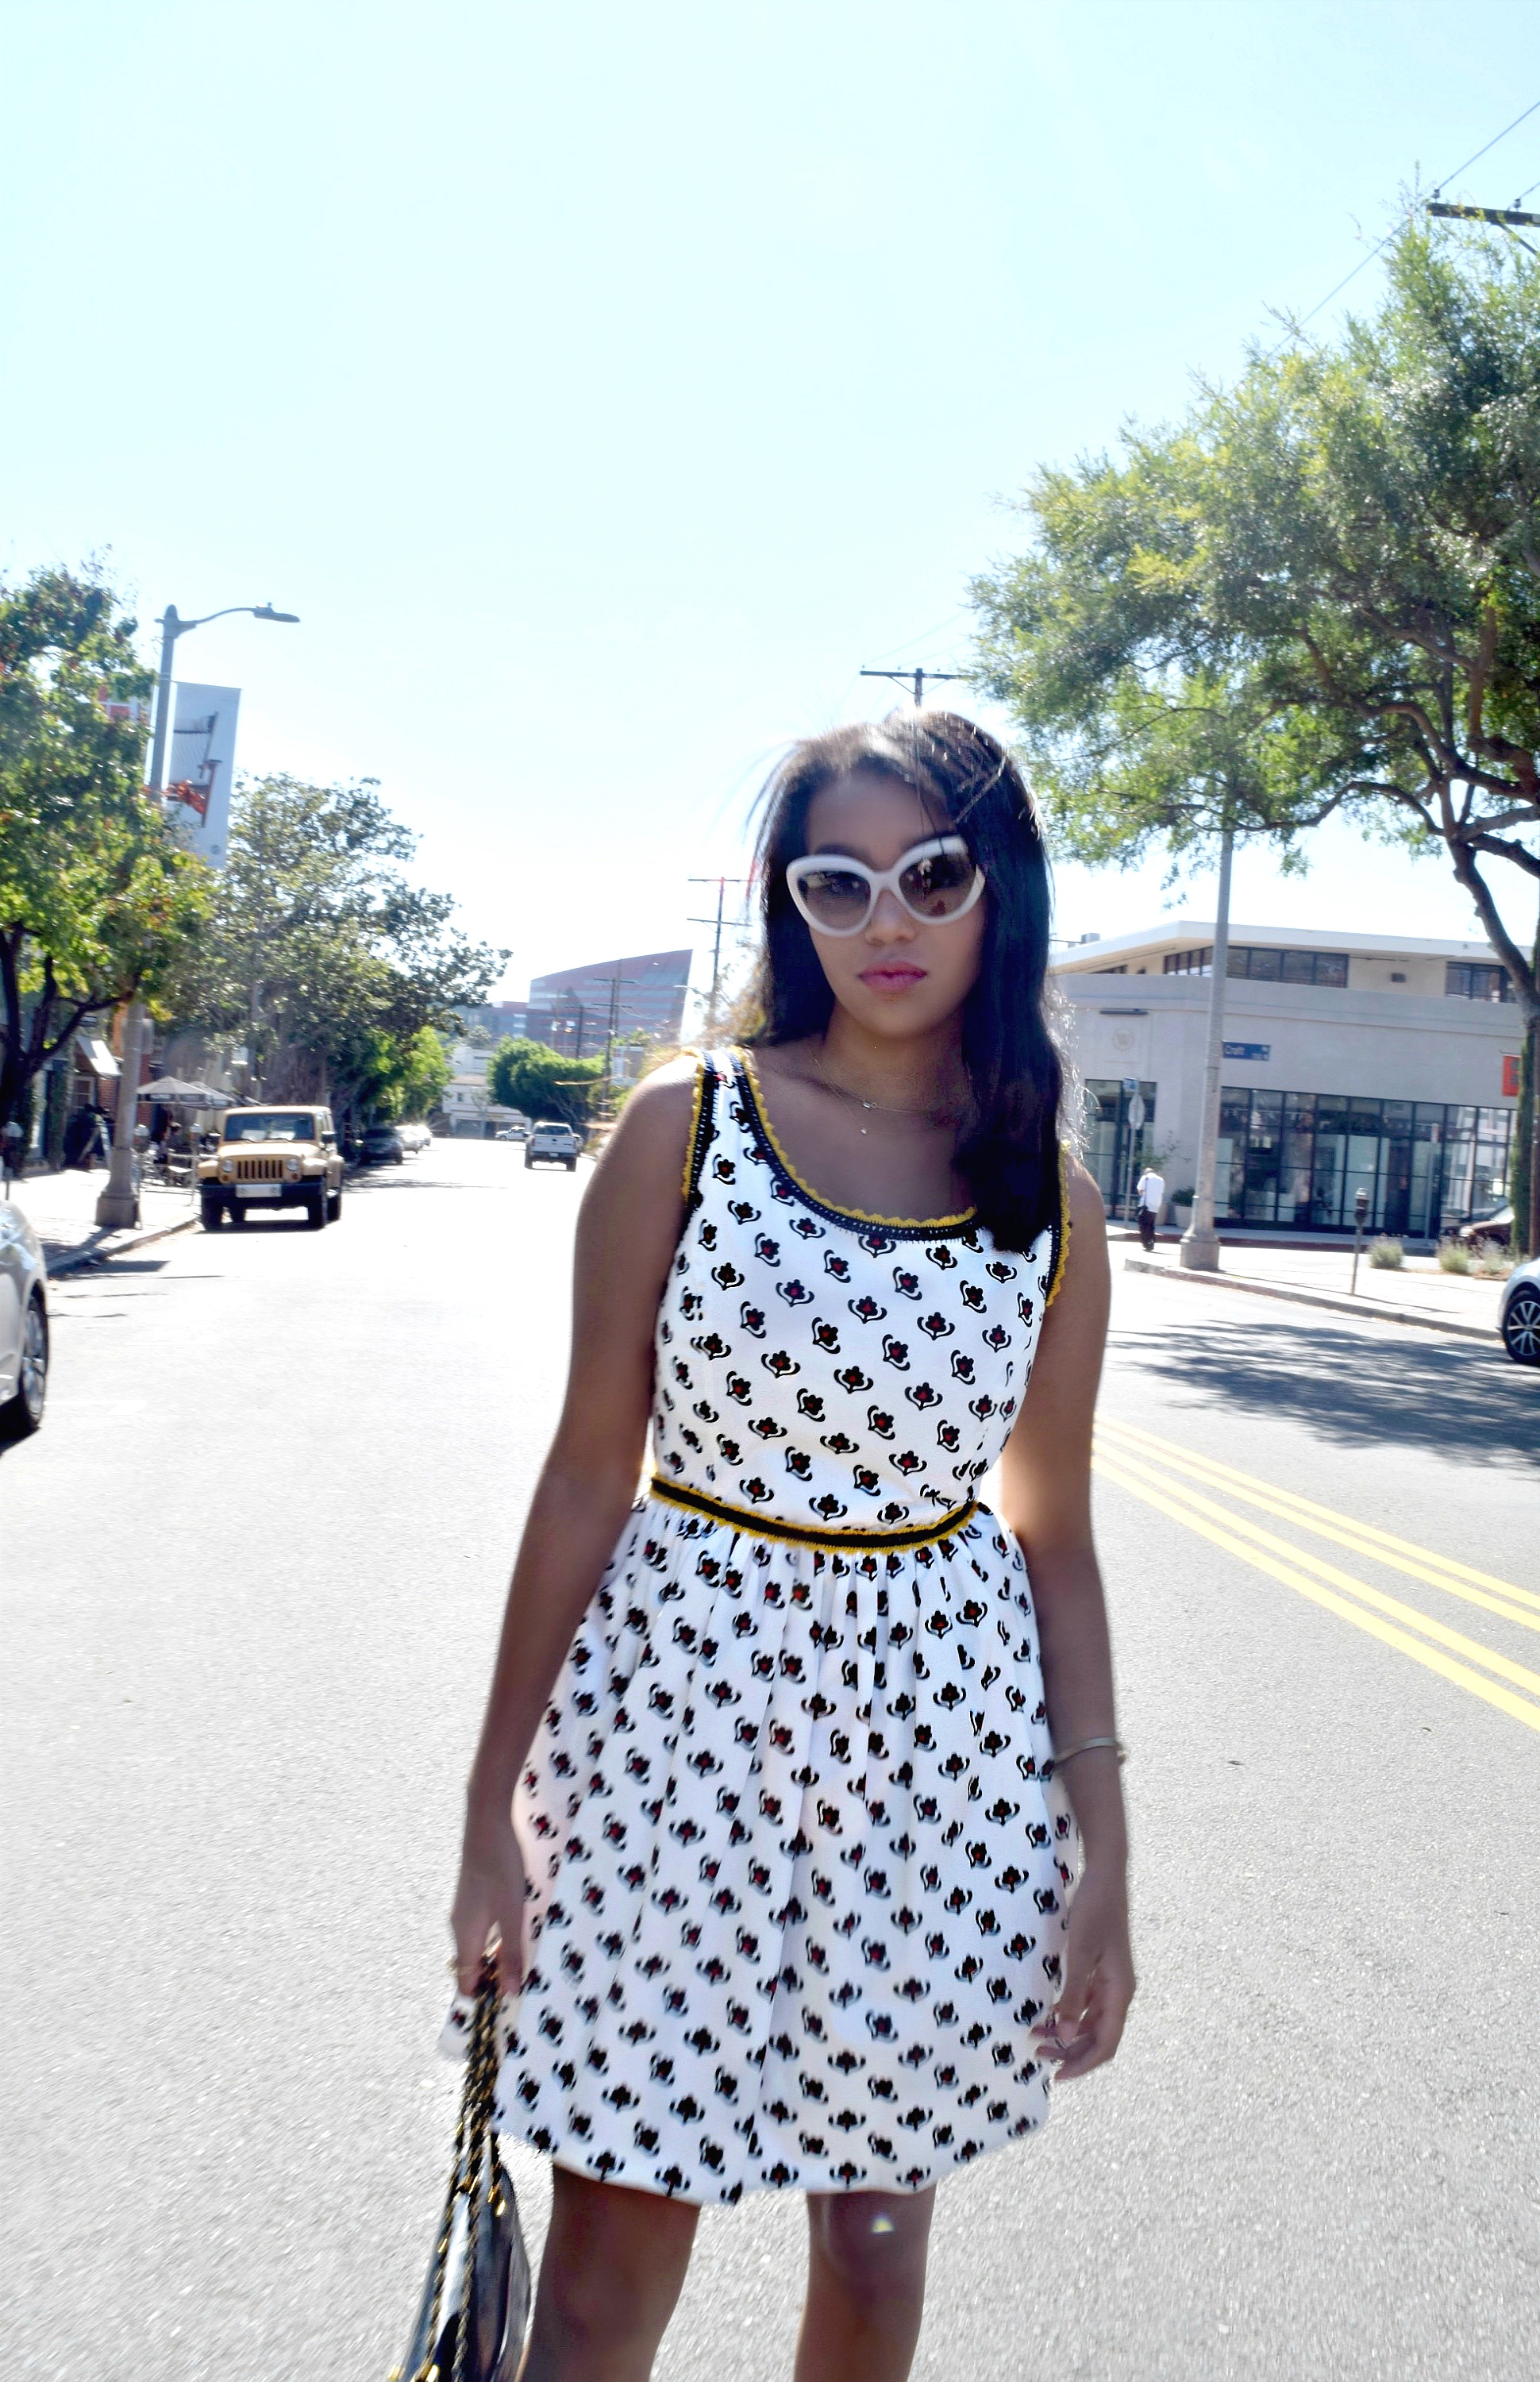 Miu Miu Fit and Flare Dress, Los Angeles Spring/Summer Street Style & Fashion: To Style, With Love